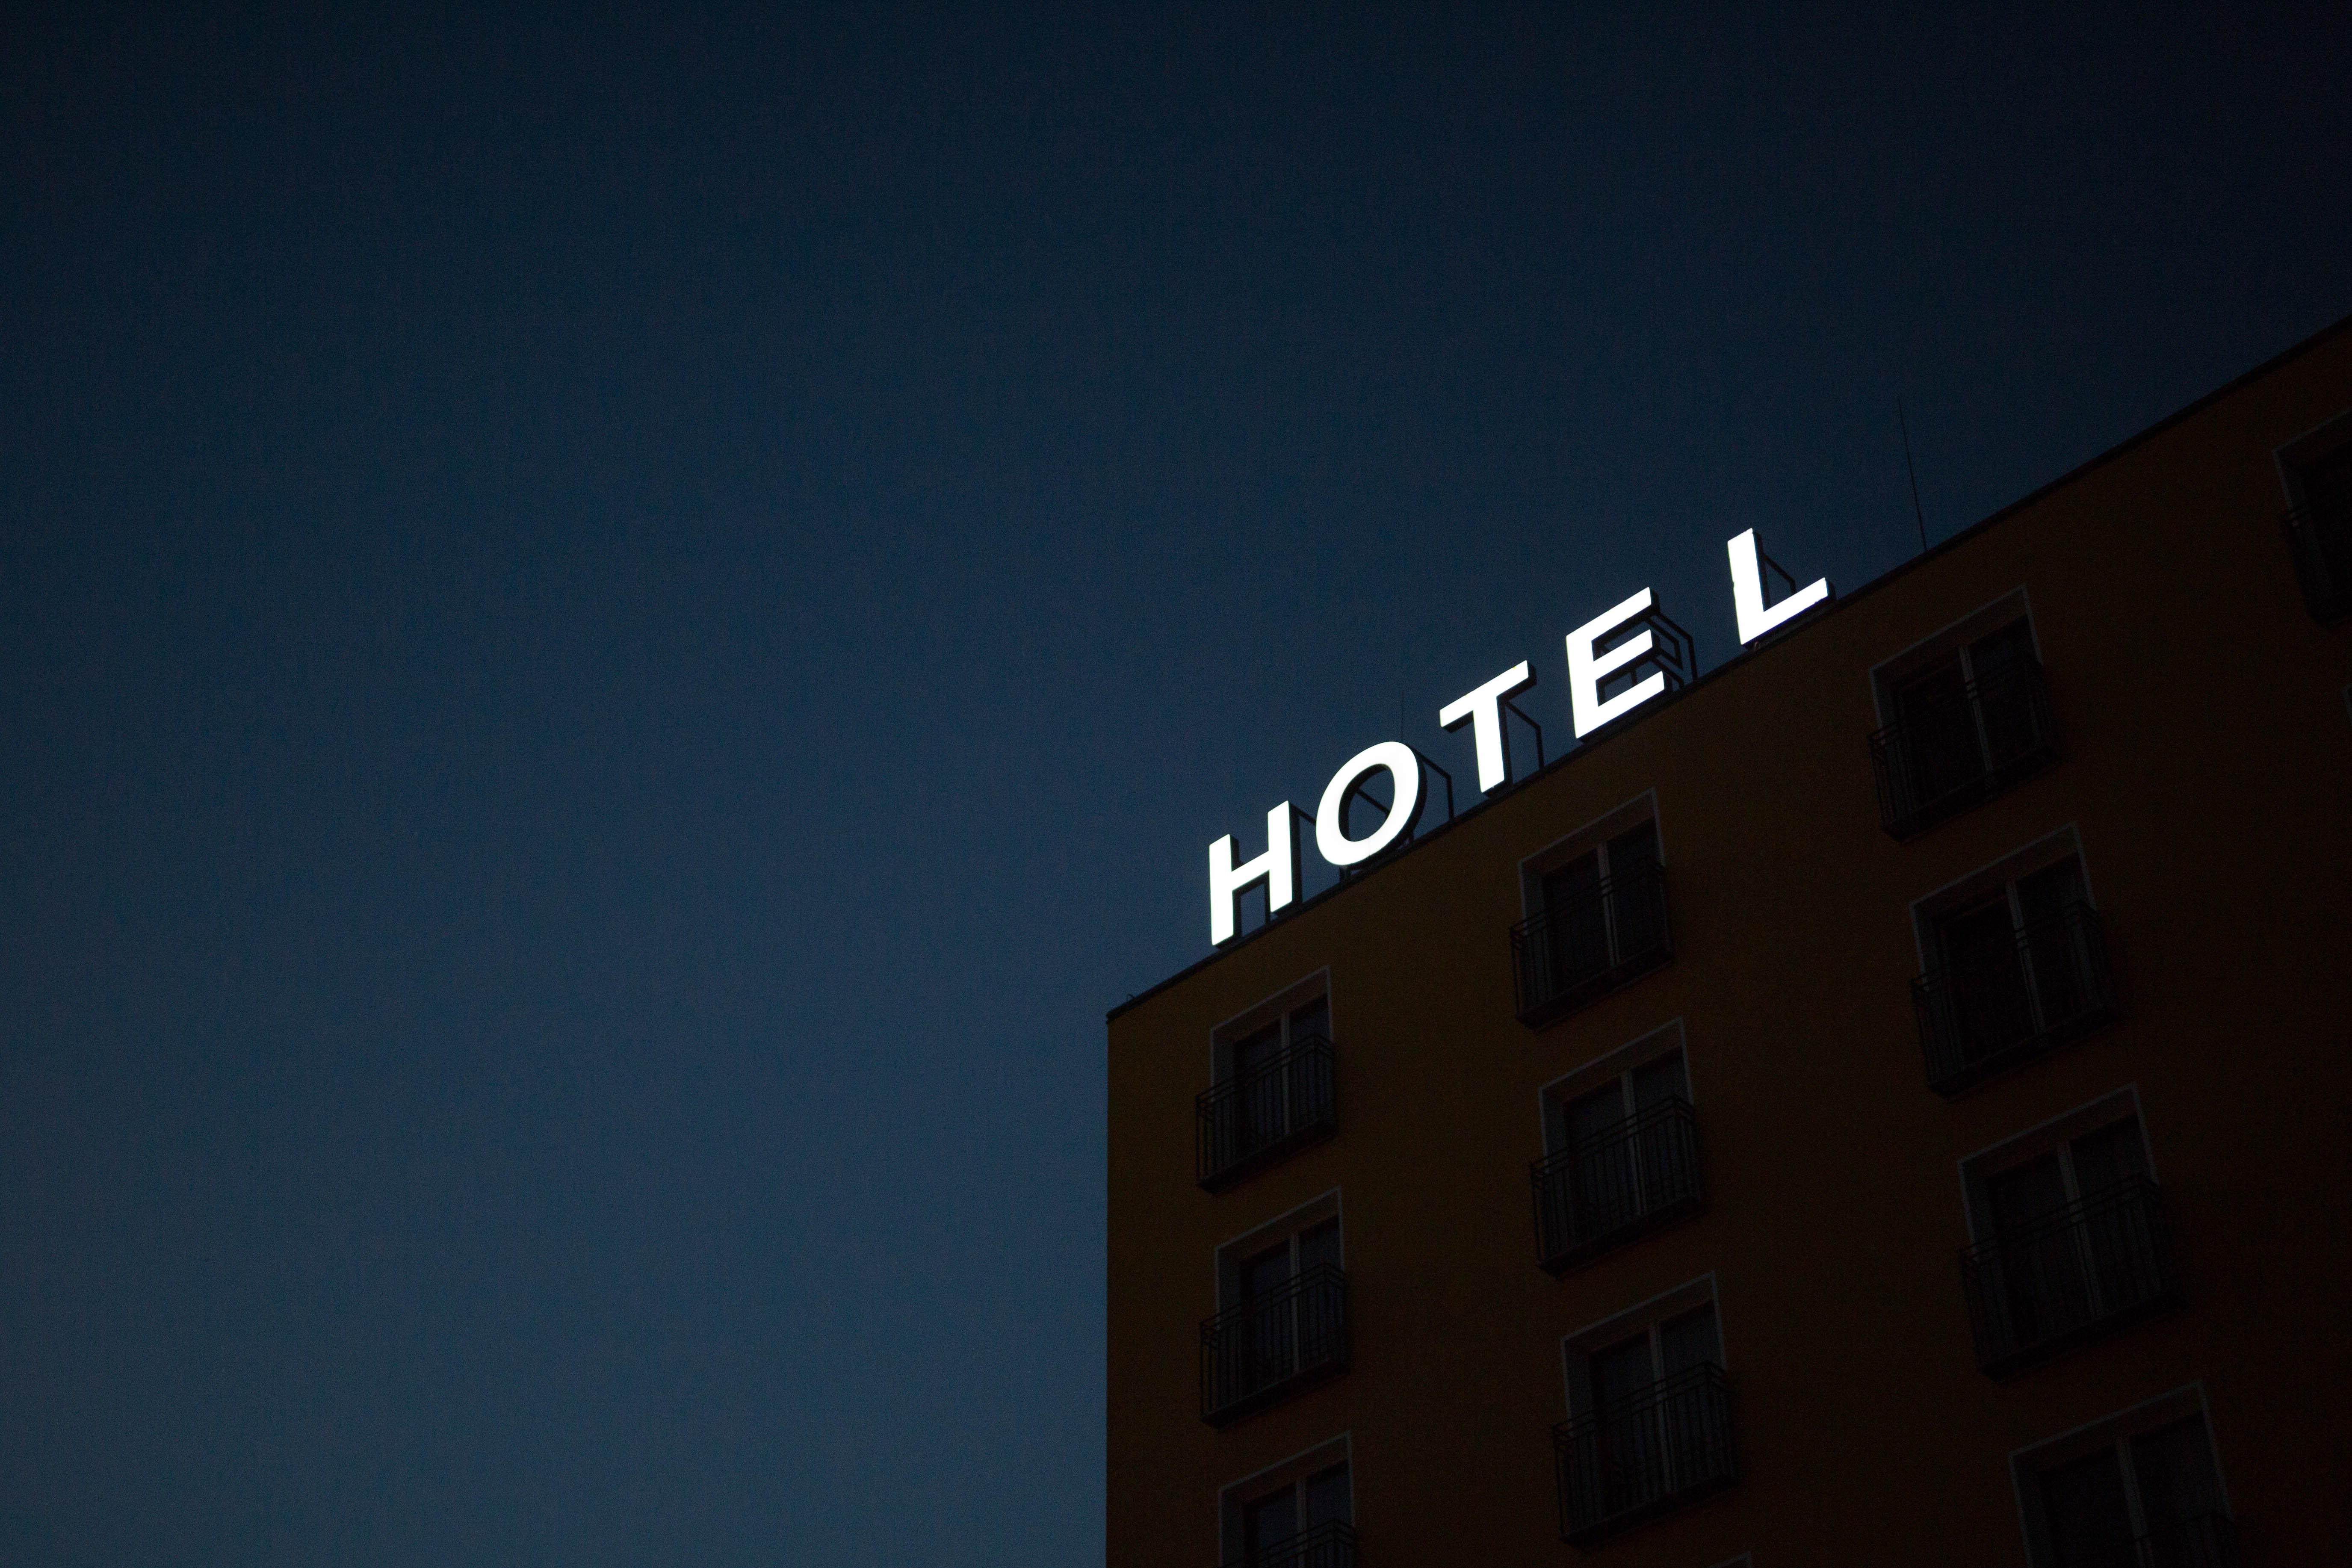 hotel sign image